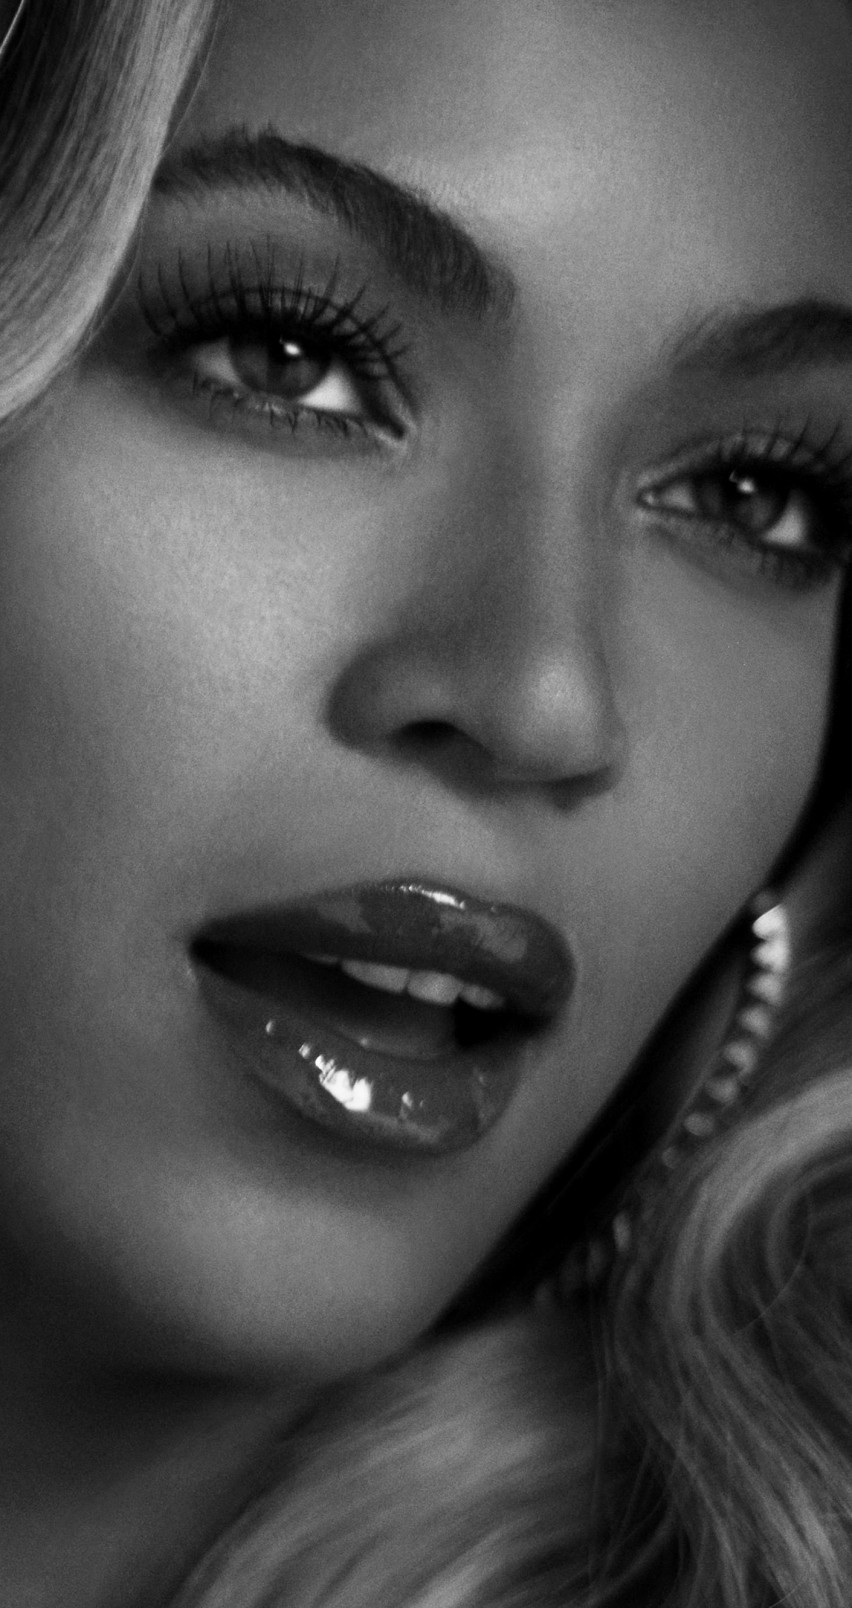 Beyonce in Black & White Wallpaper for Apple iPhone 6 / 6s